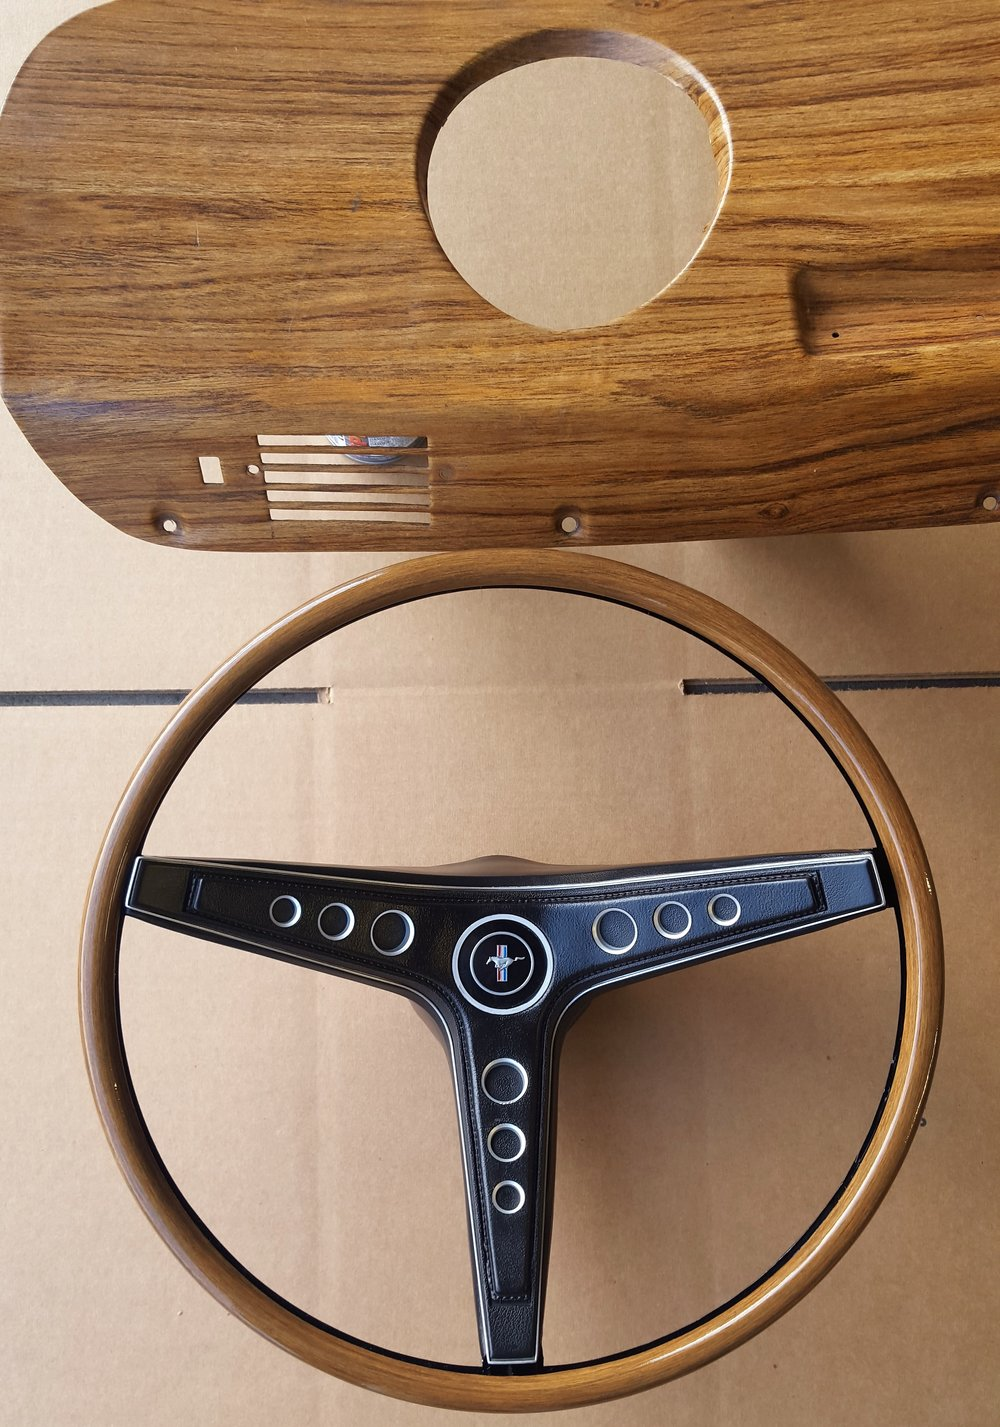 1969 Mustang rim blow steering wheel - TEAK